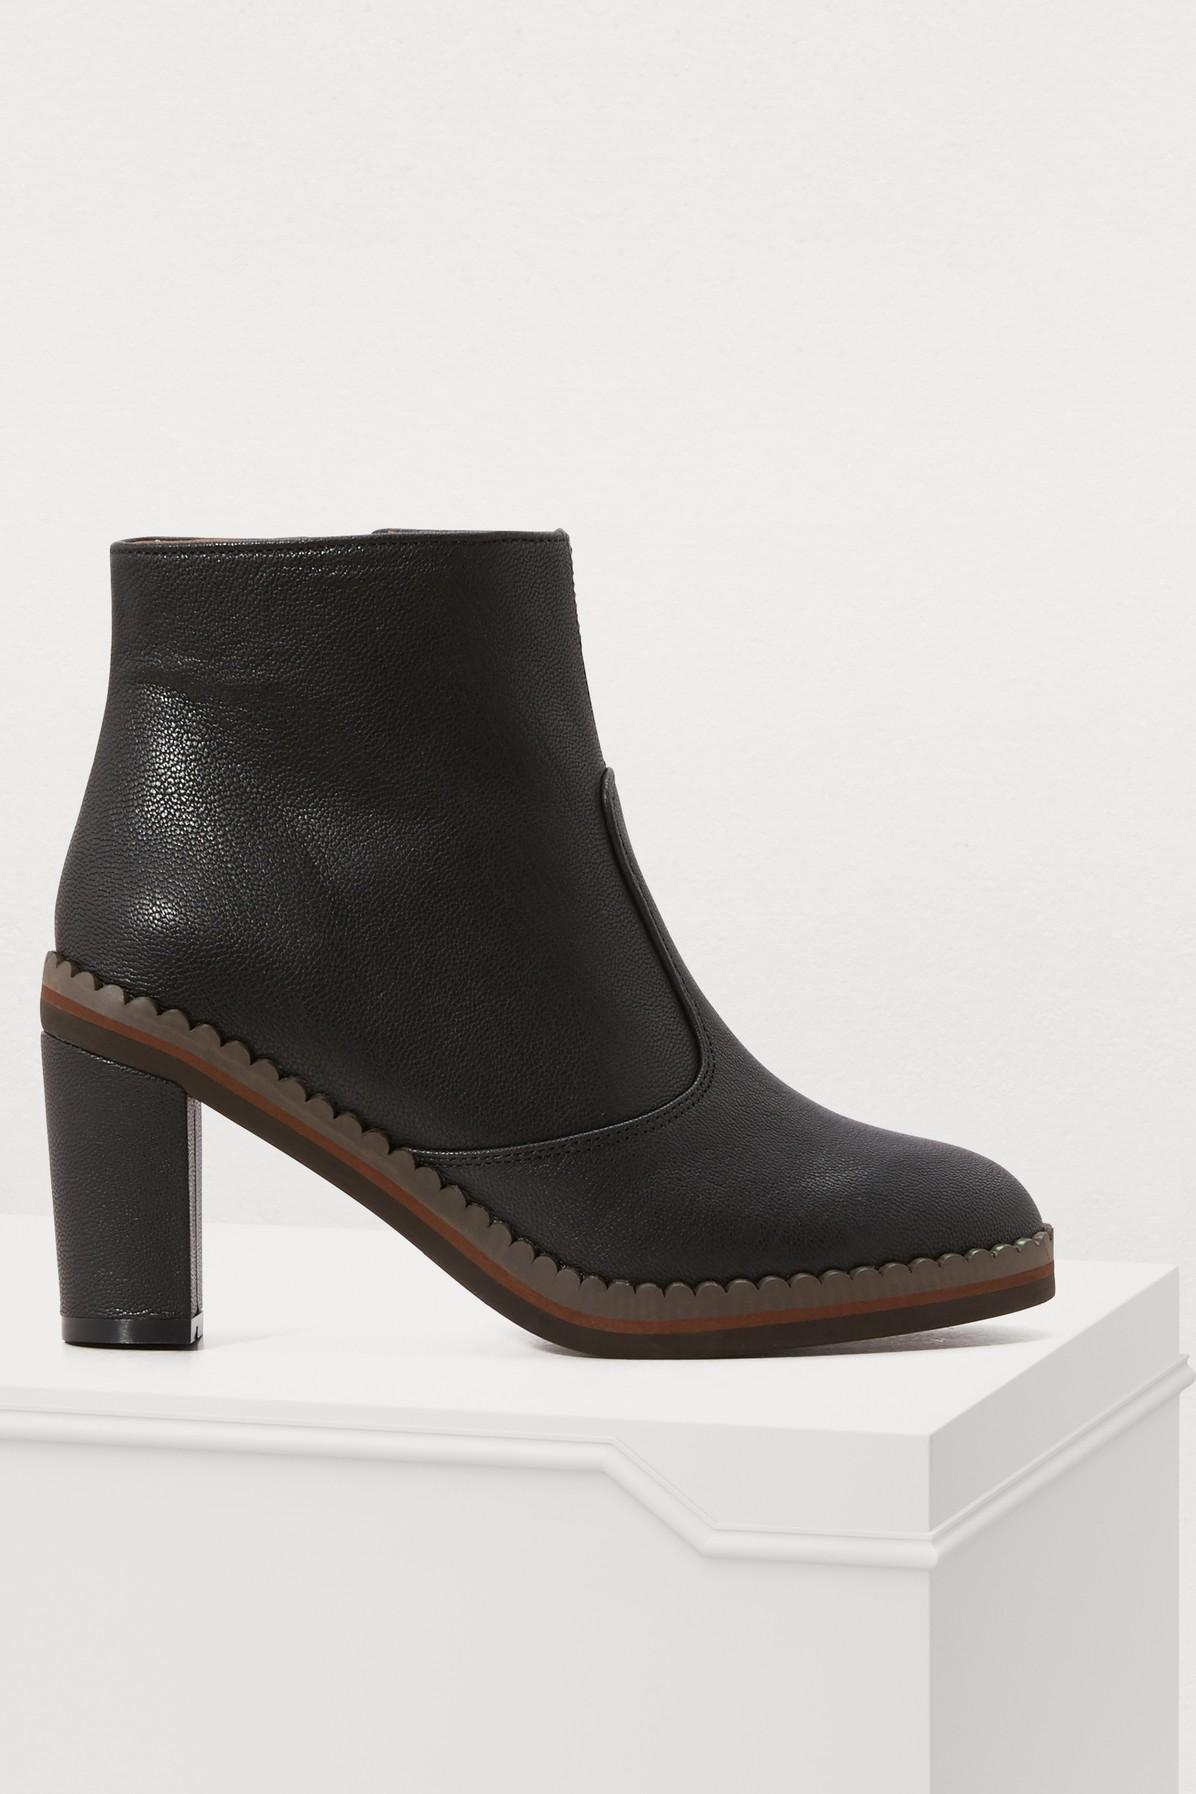 7a9db5b4837b See By ChloÉ Stasya Ankle Boots In Nero | ModeSens